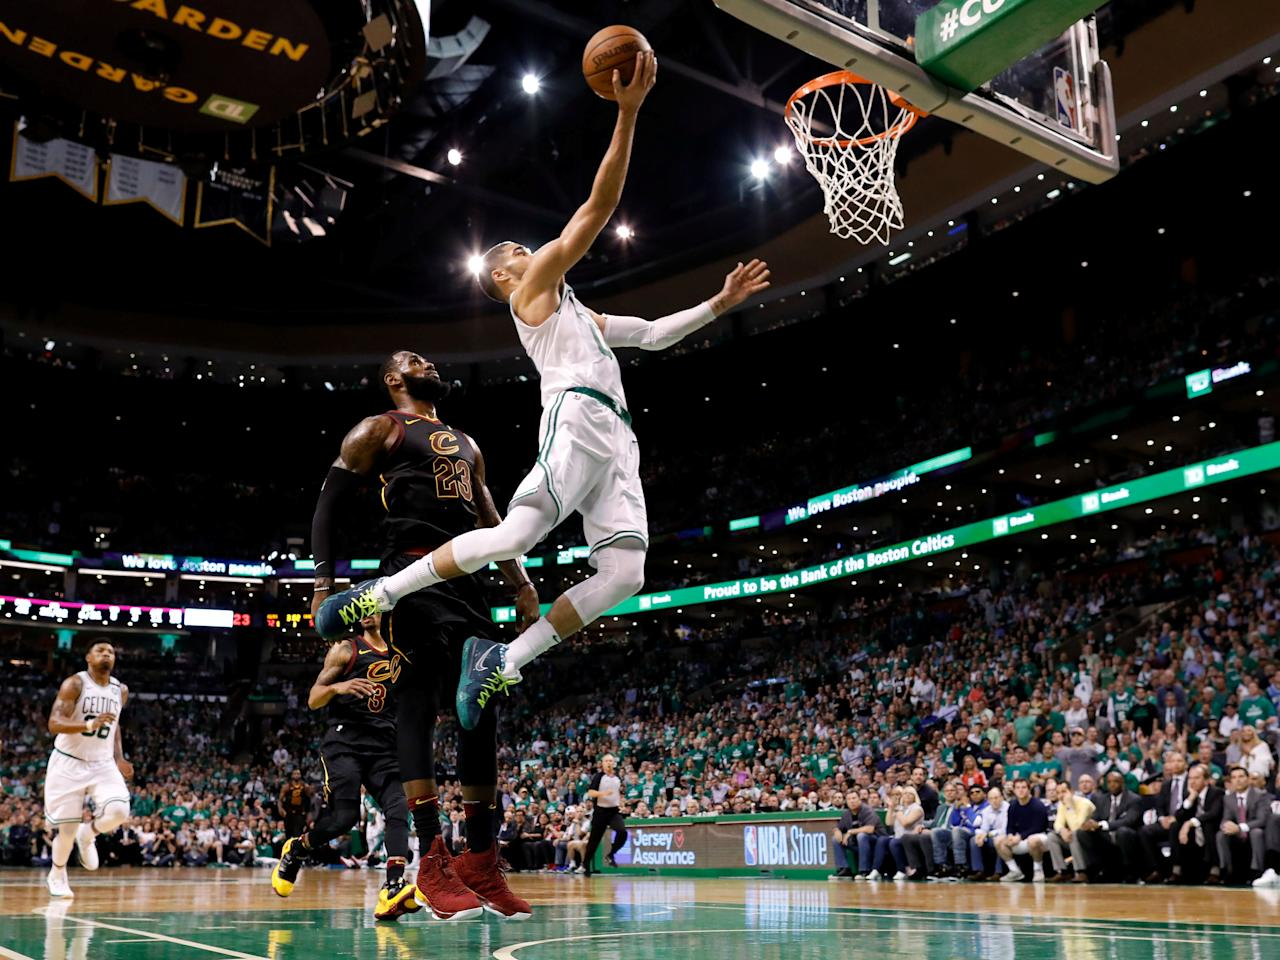 May 23, 2018; Boston, MA, USA; Boston Celtics forward Jayson Tatum (0) attempts a layup in front of Cleveland Cavaliers forward LeBron James (23) during the third quarter of game five of the Eastern conference finals of the 2018 NBA Playoffs at TD Garden. Mandatory Credit: Greg M. Cooper-USA TODAY Sports     TPX IMAGES OF THE DAY